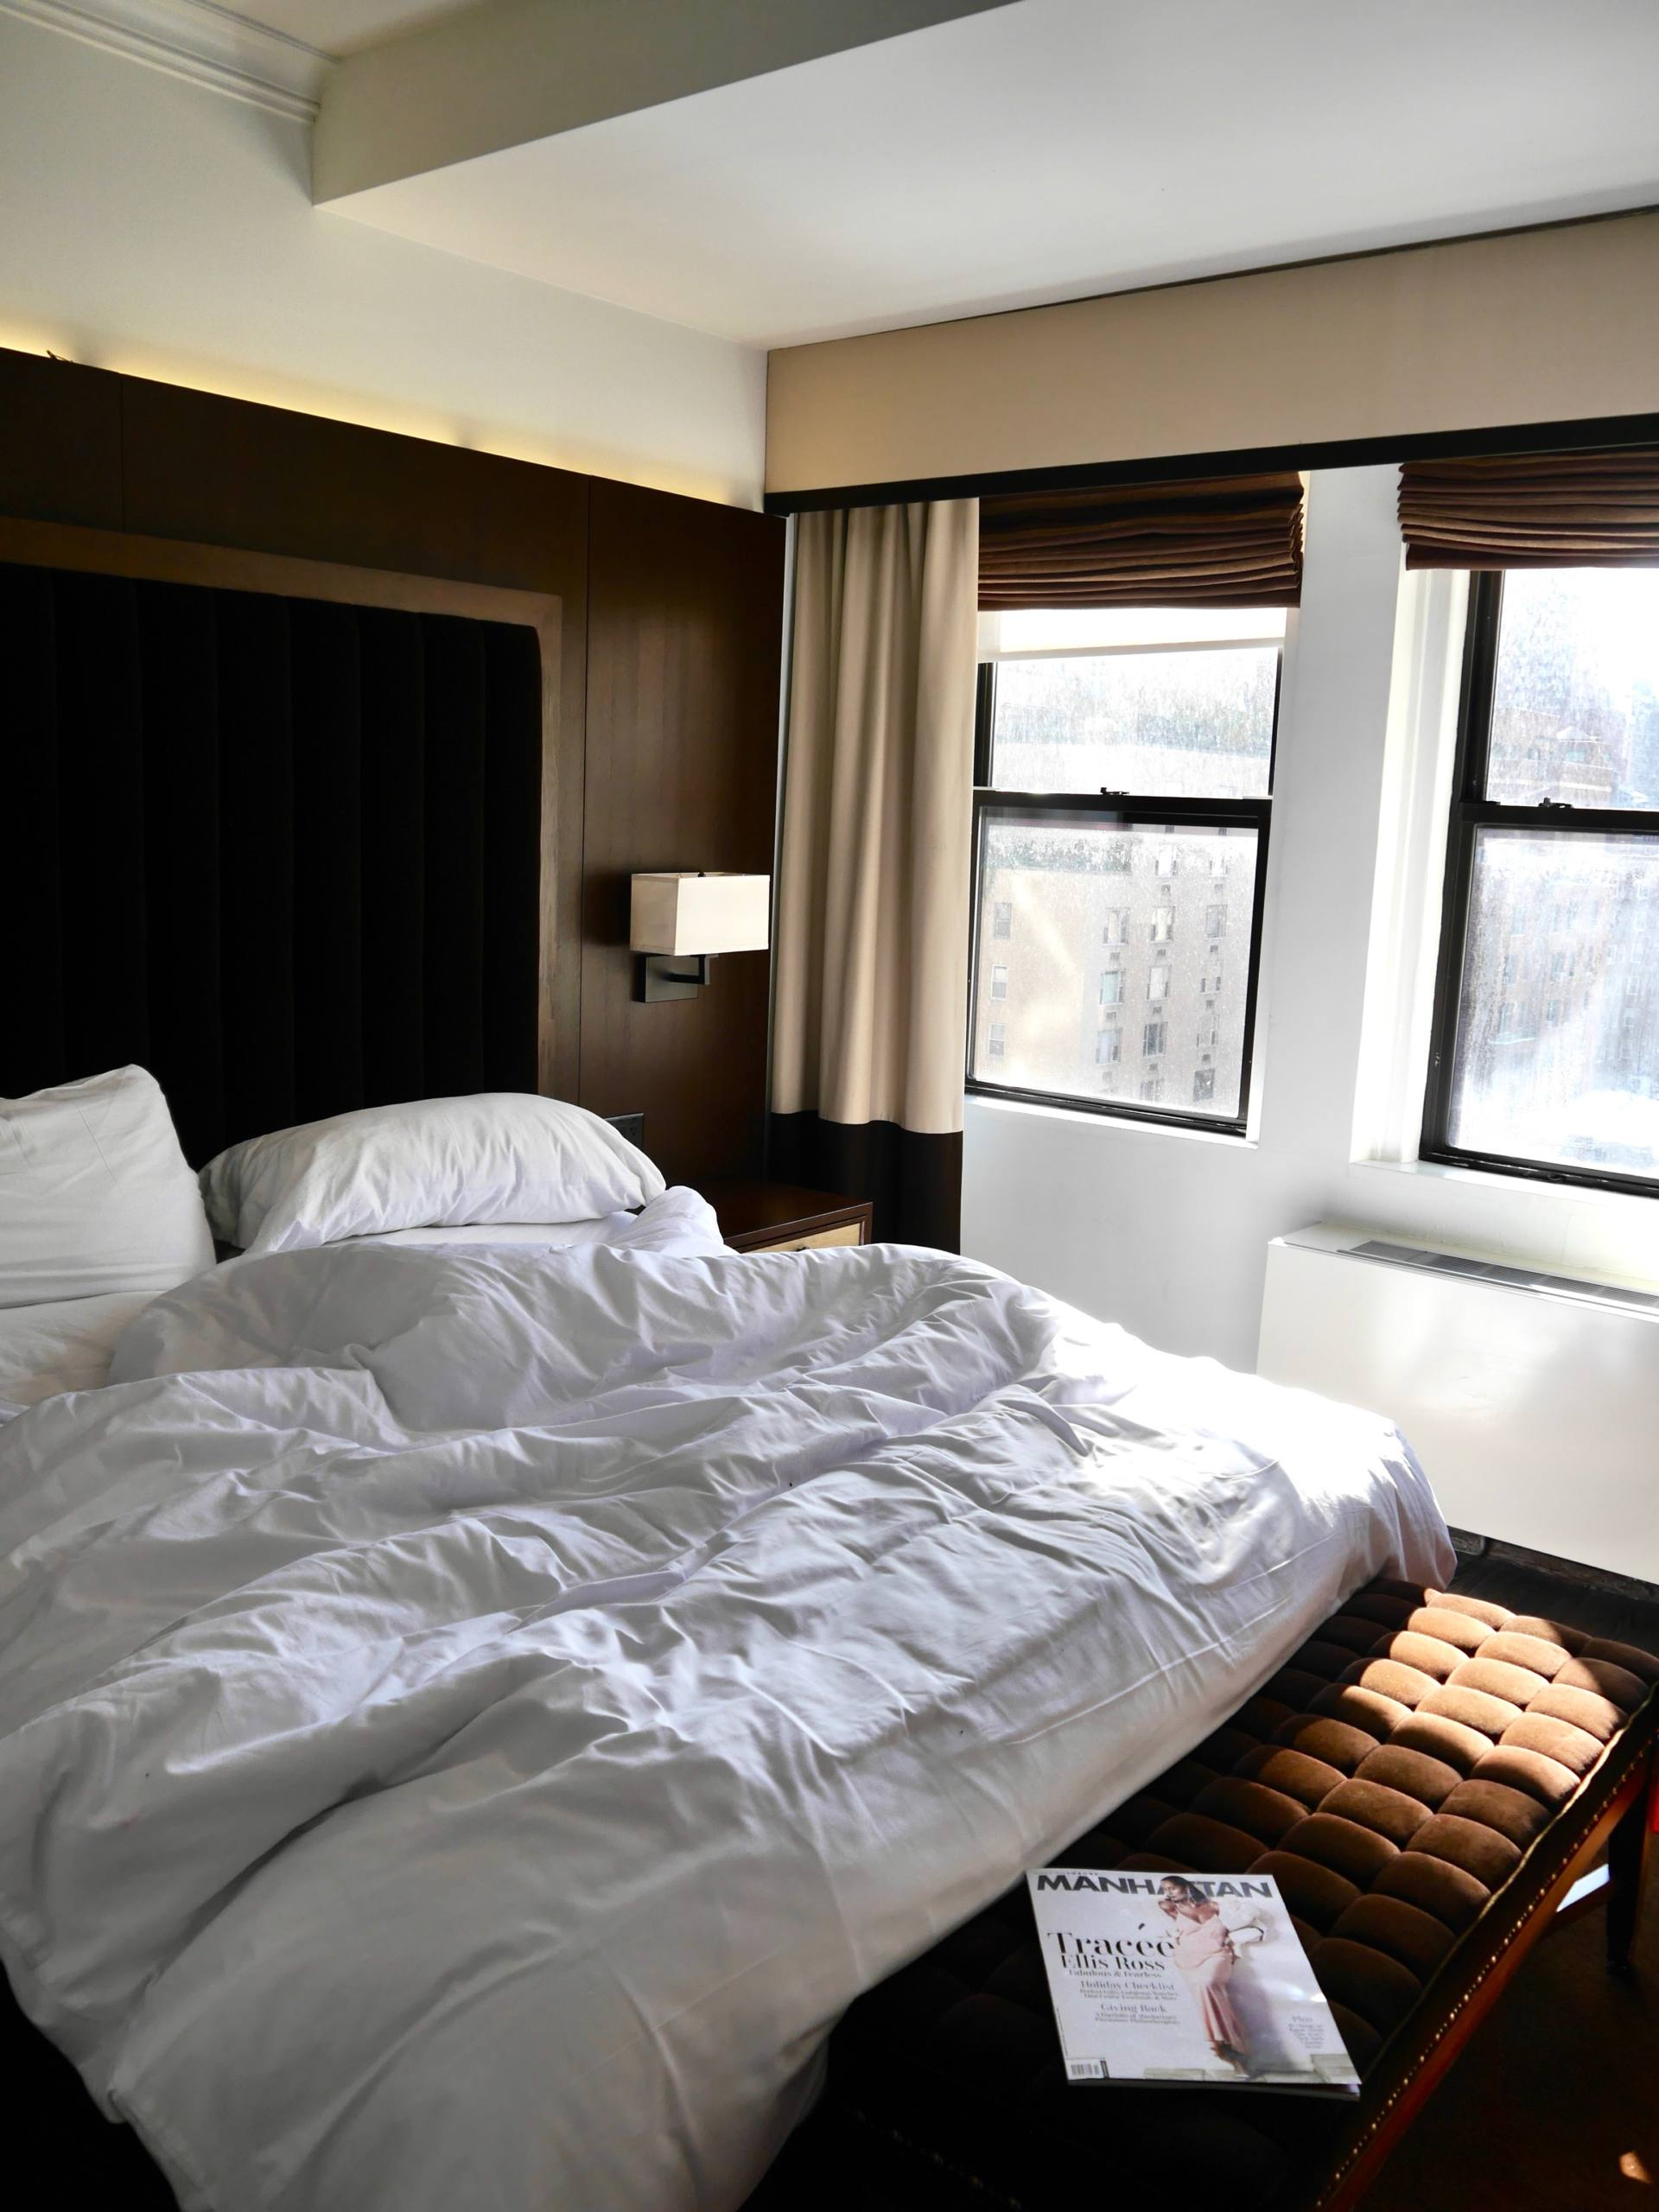 Hotels In The Chelsea Area Of Nyc